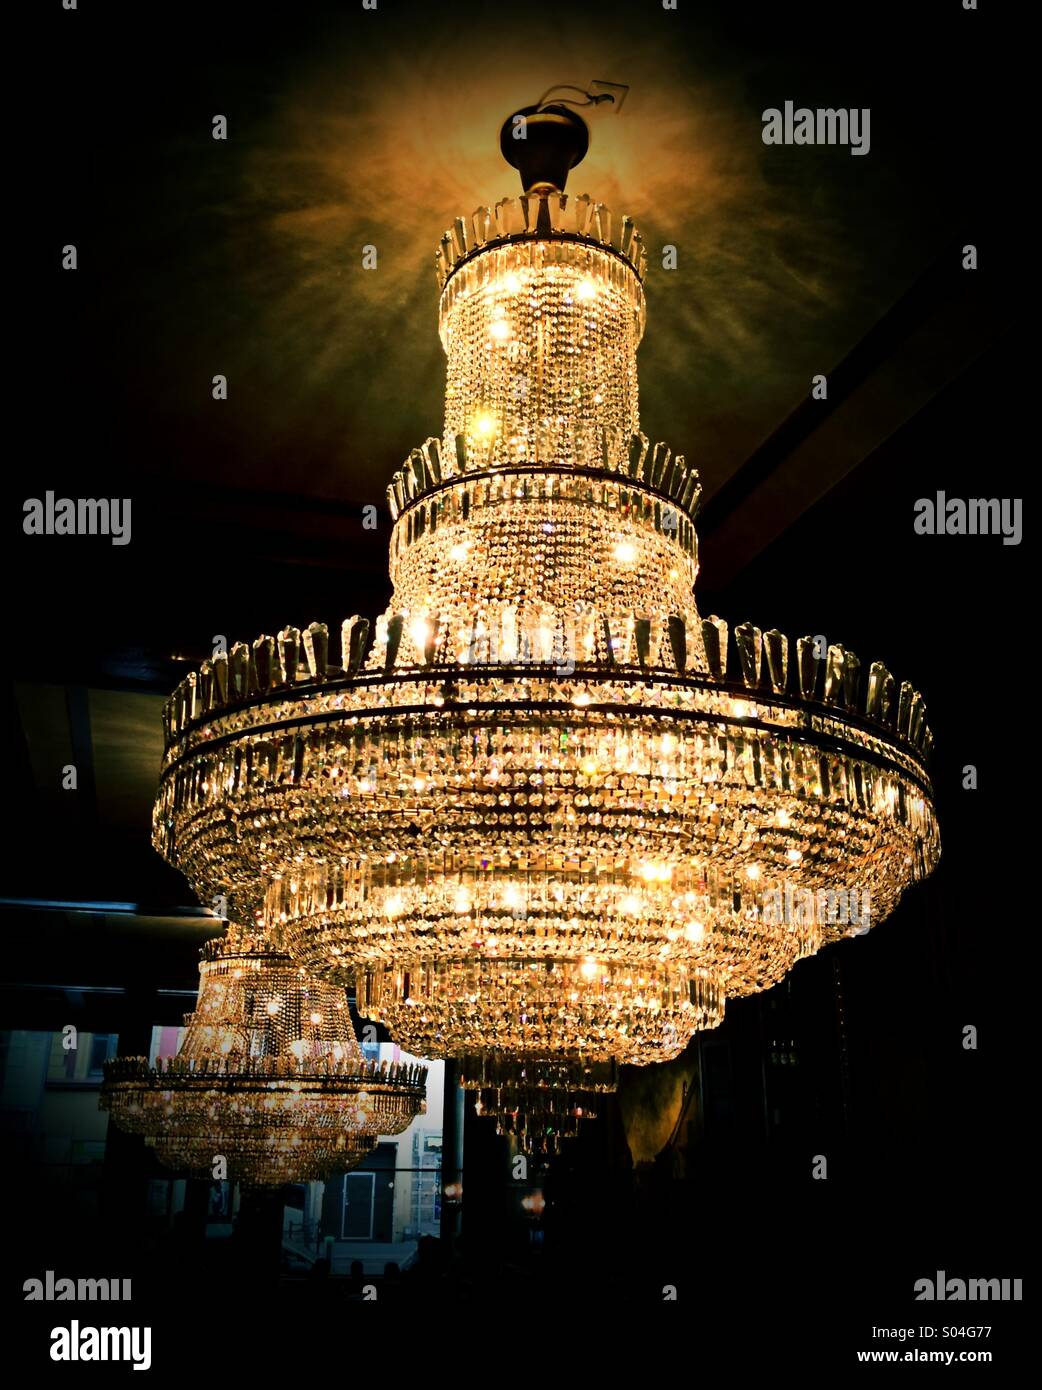 Antique chandelier in a night club and restaurant which was once very grand and lavish. - Stock Image